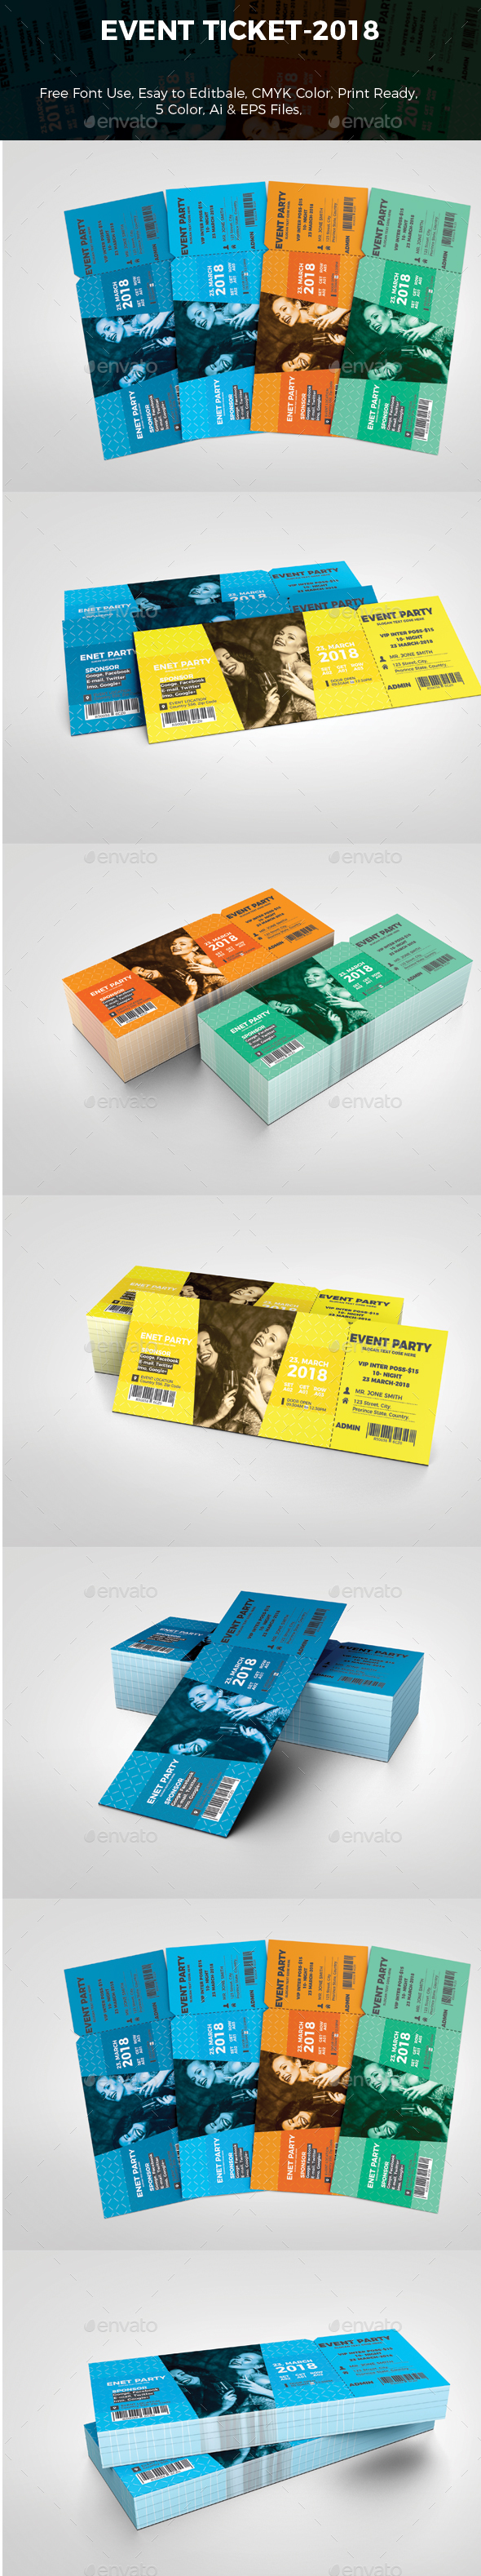 Event Ticket - Stationery Print Templates